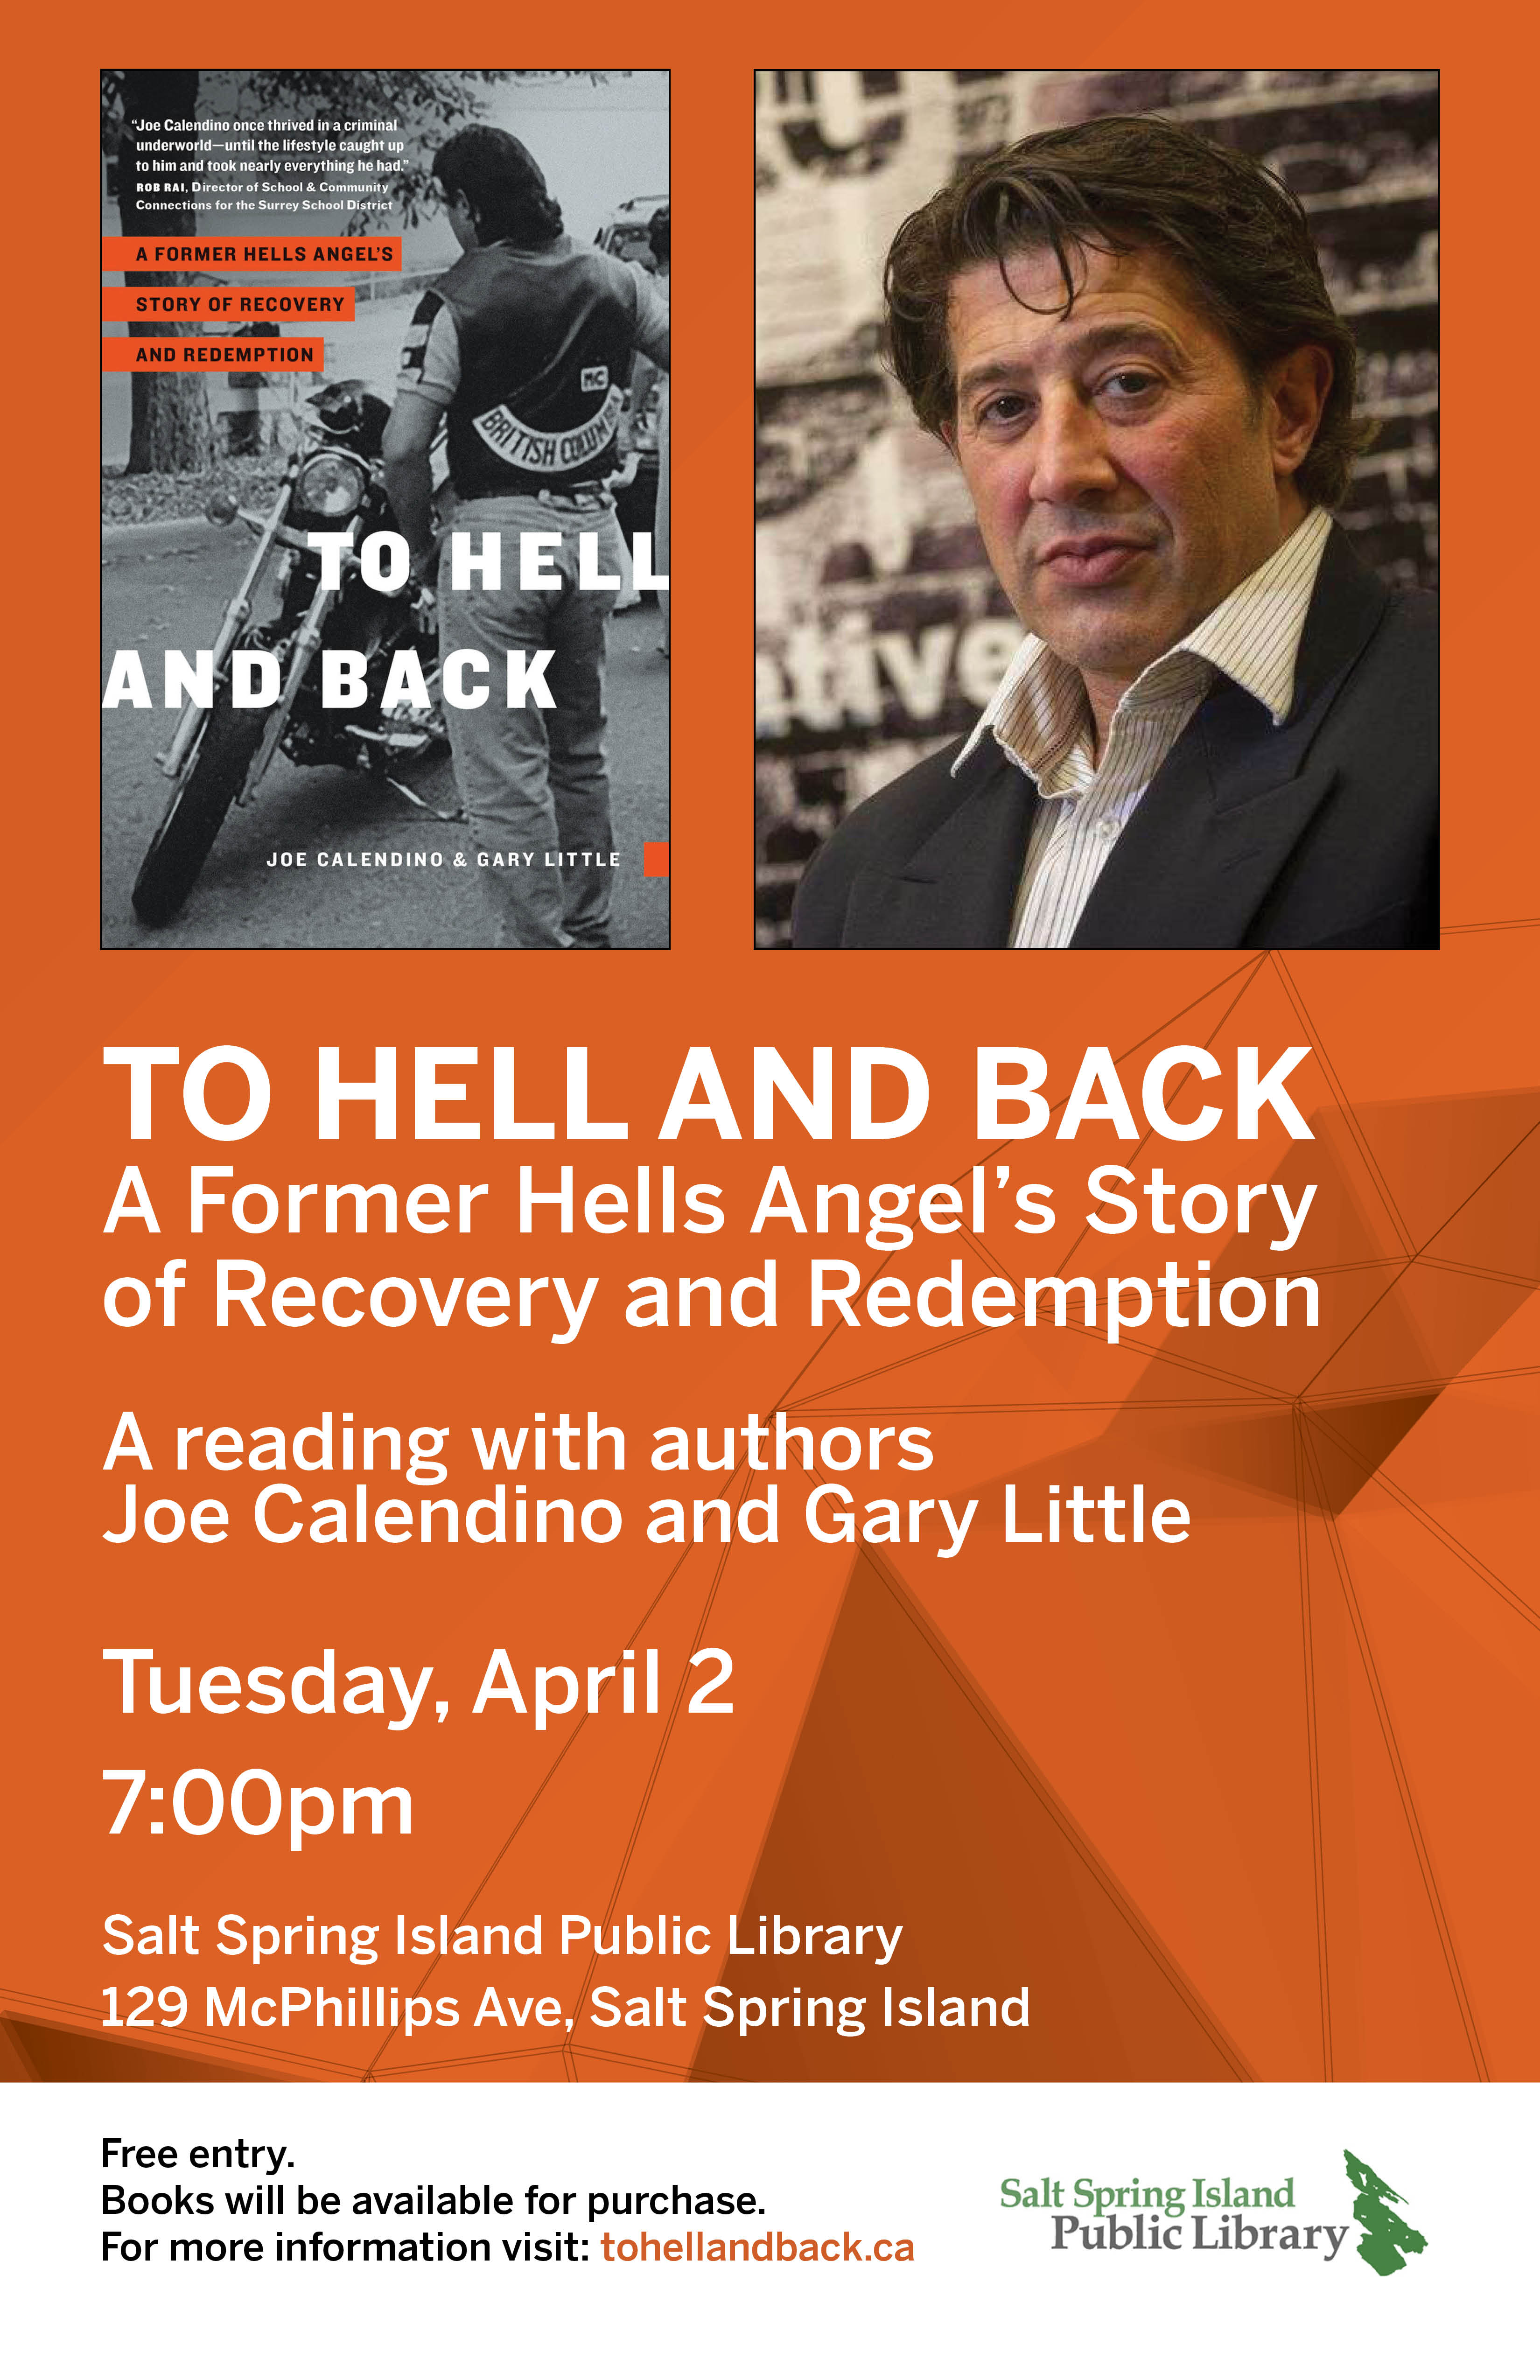 To Hell and Back @ Community Program Room